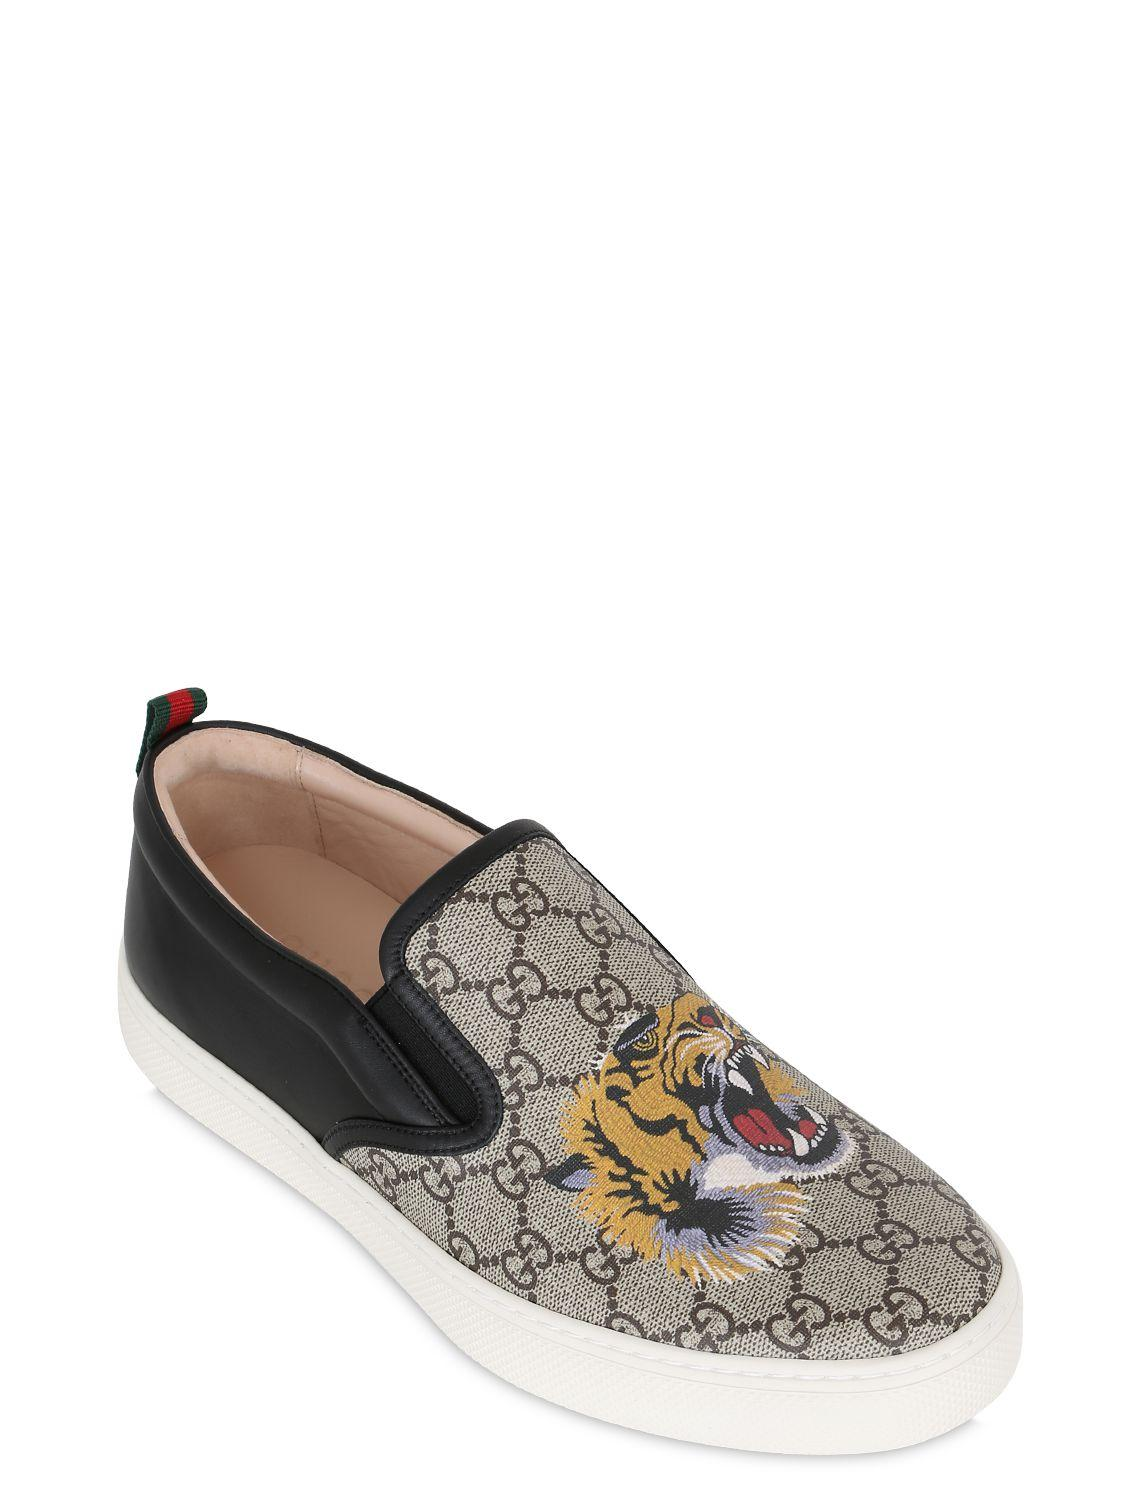 9f26a0d38b9ae Lyst - Gucci Tiger Print Gg Supreme Slip On Sneakers in Natural for Men